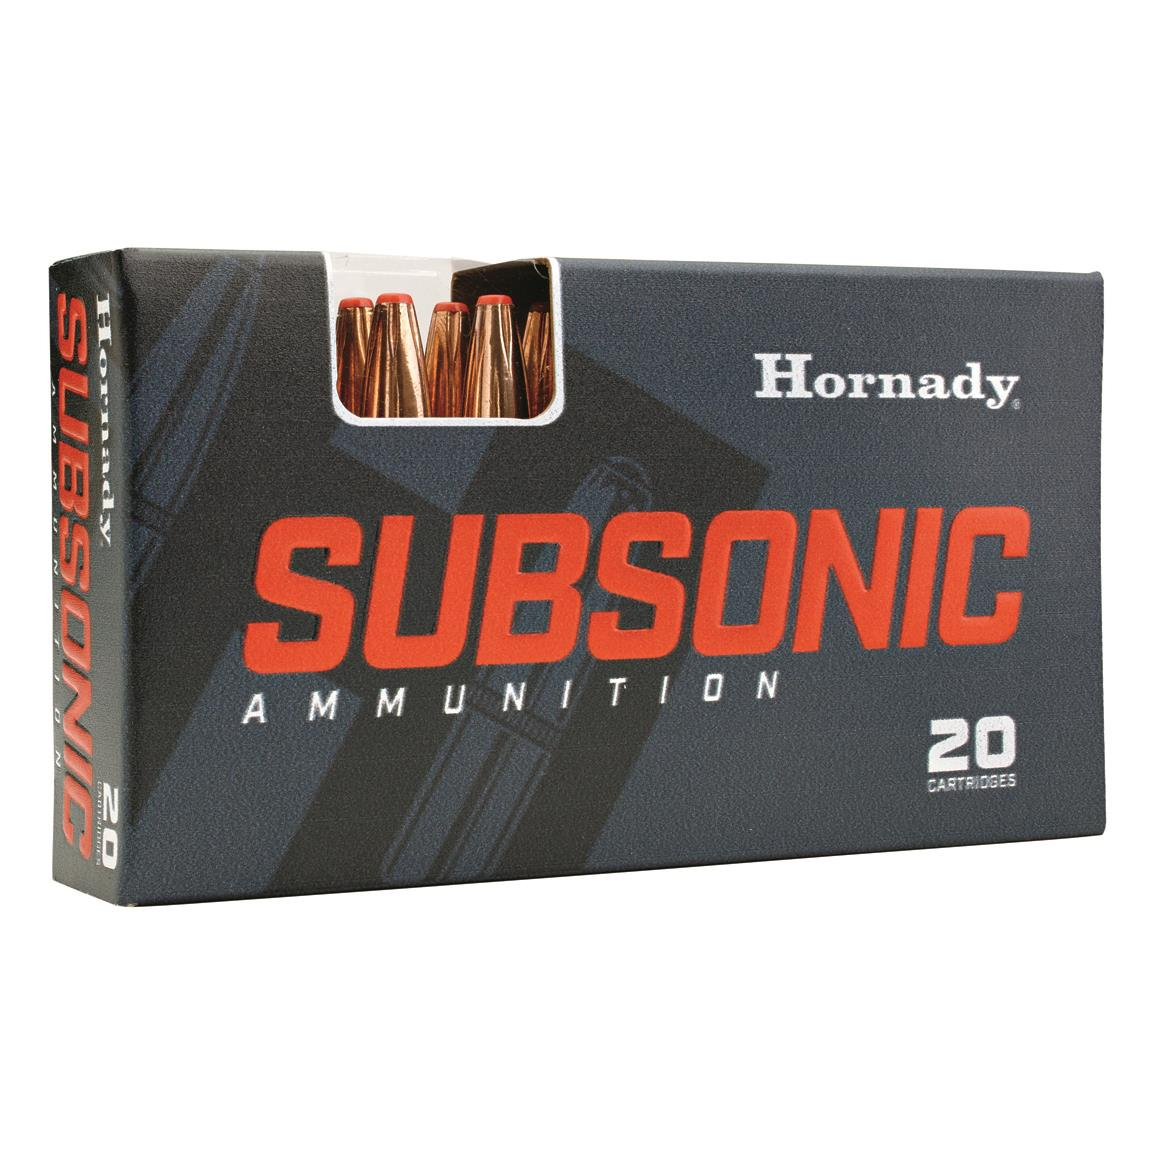 NEW! Hornady Subsonic, .30-30 Winchester, Sub-X, 175 Grain, 20 Rounds